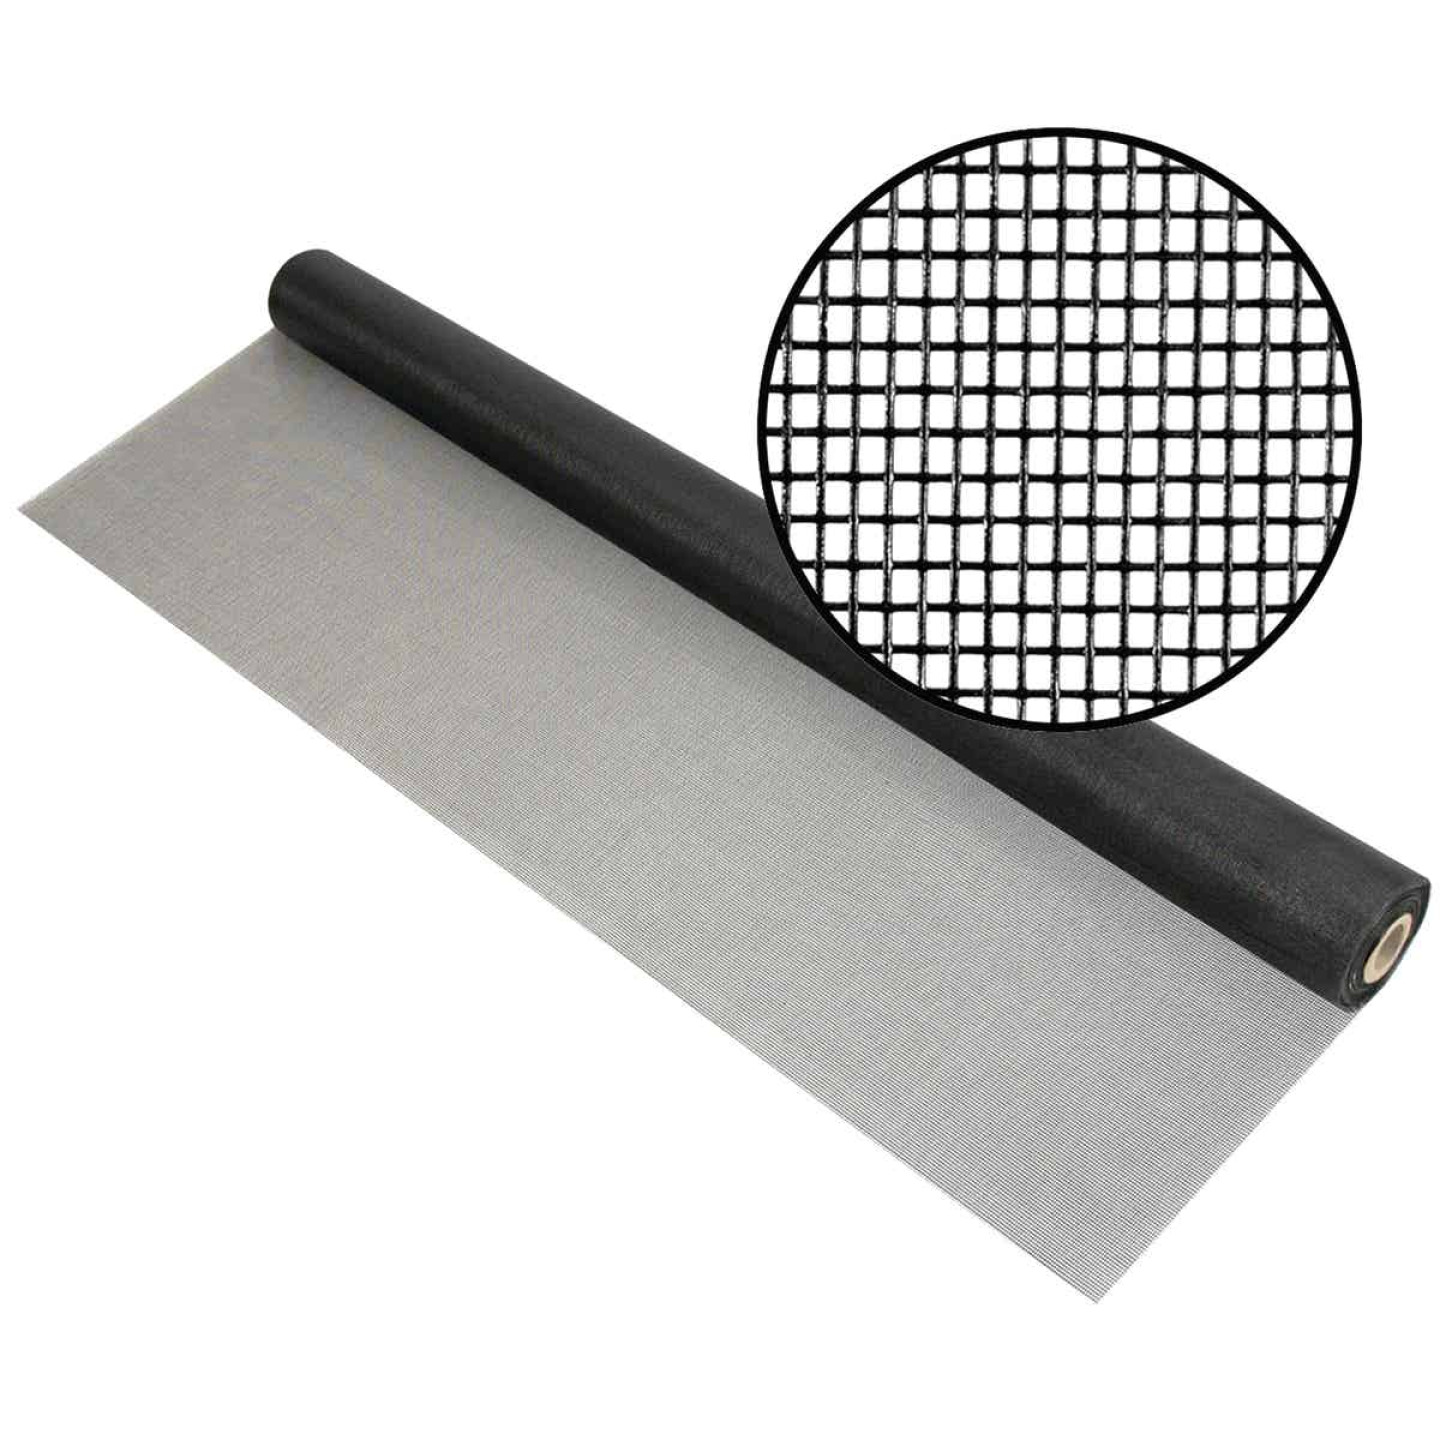 Phifer 48 In. x 100 Ft. Charcoal Fiberglass Pool Screen Image 1